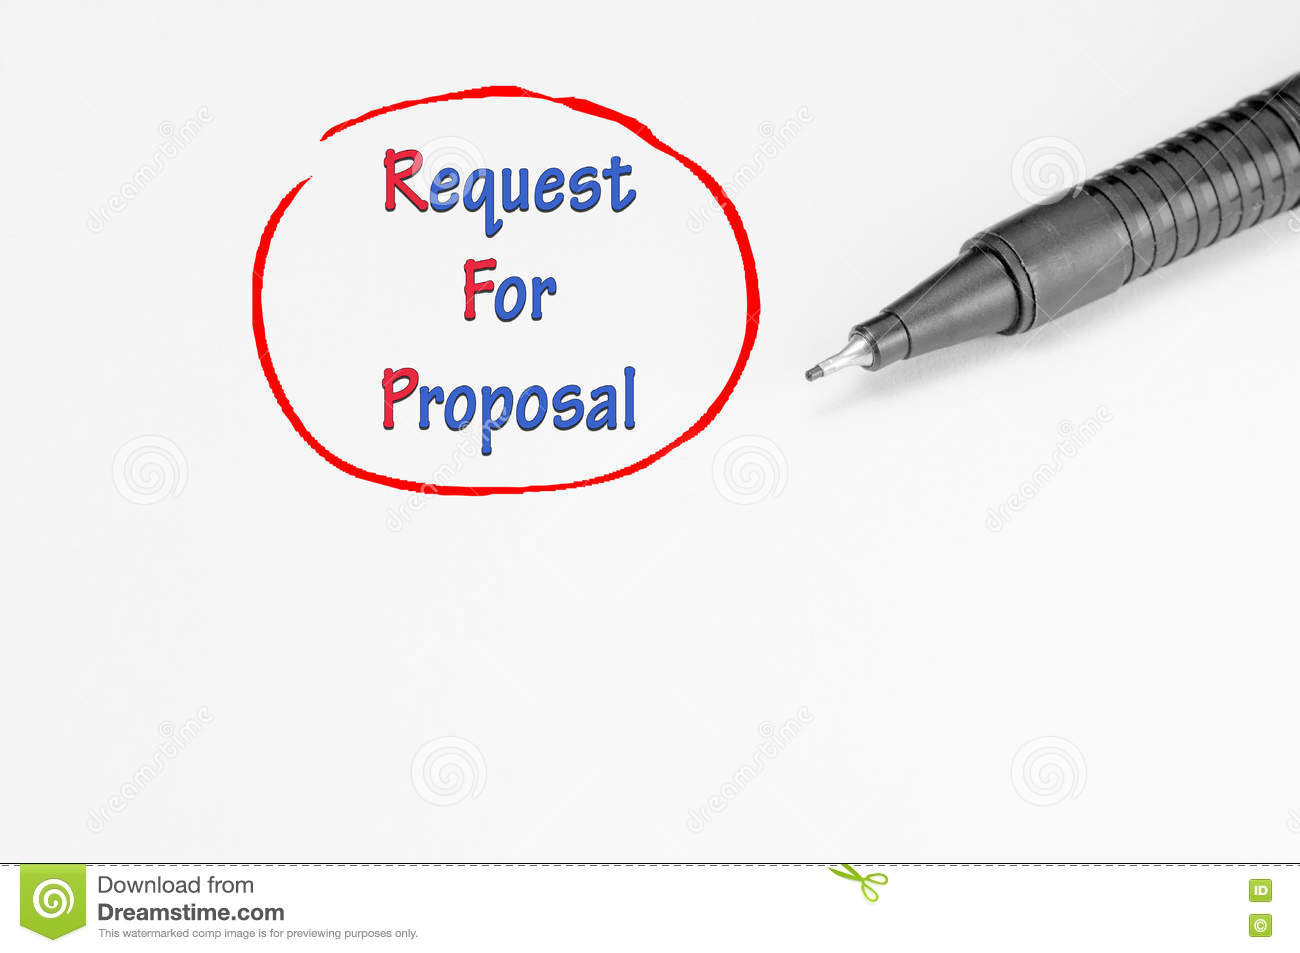 Request for Proposal - Business Concept